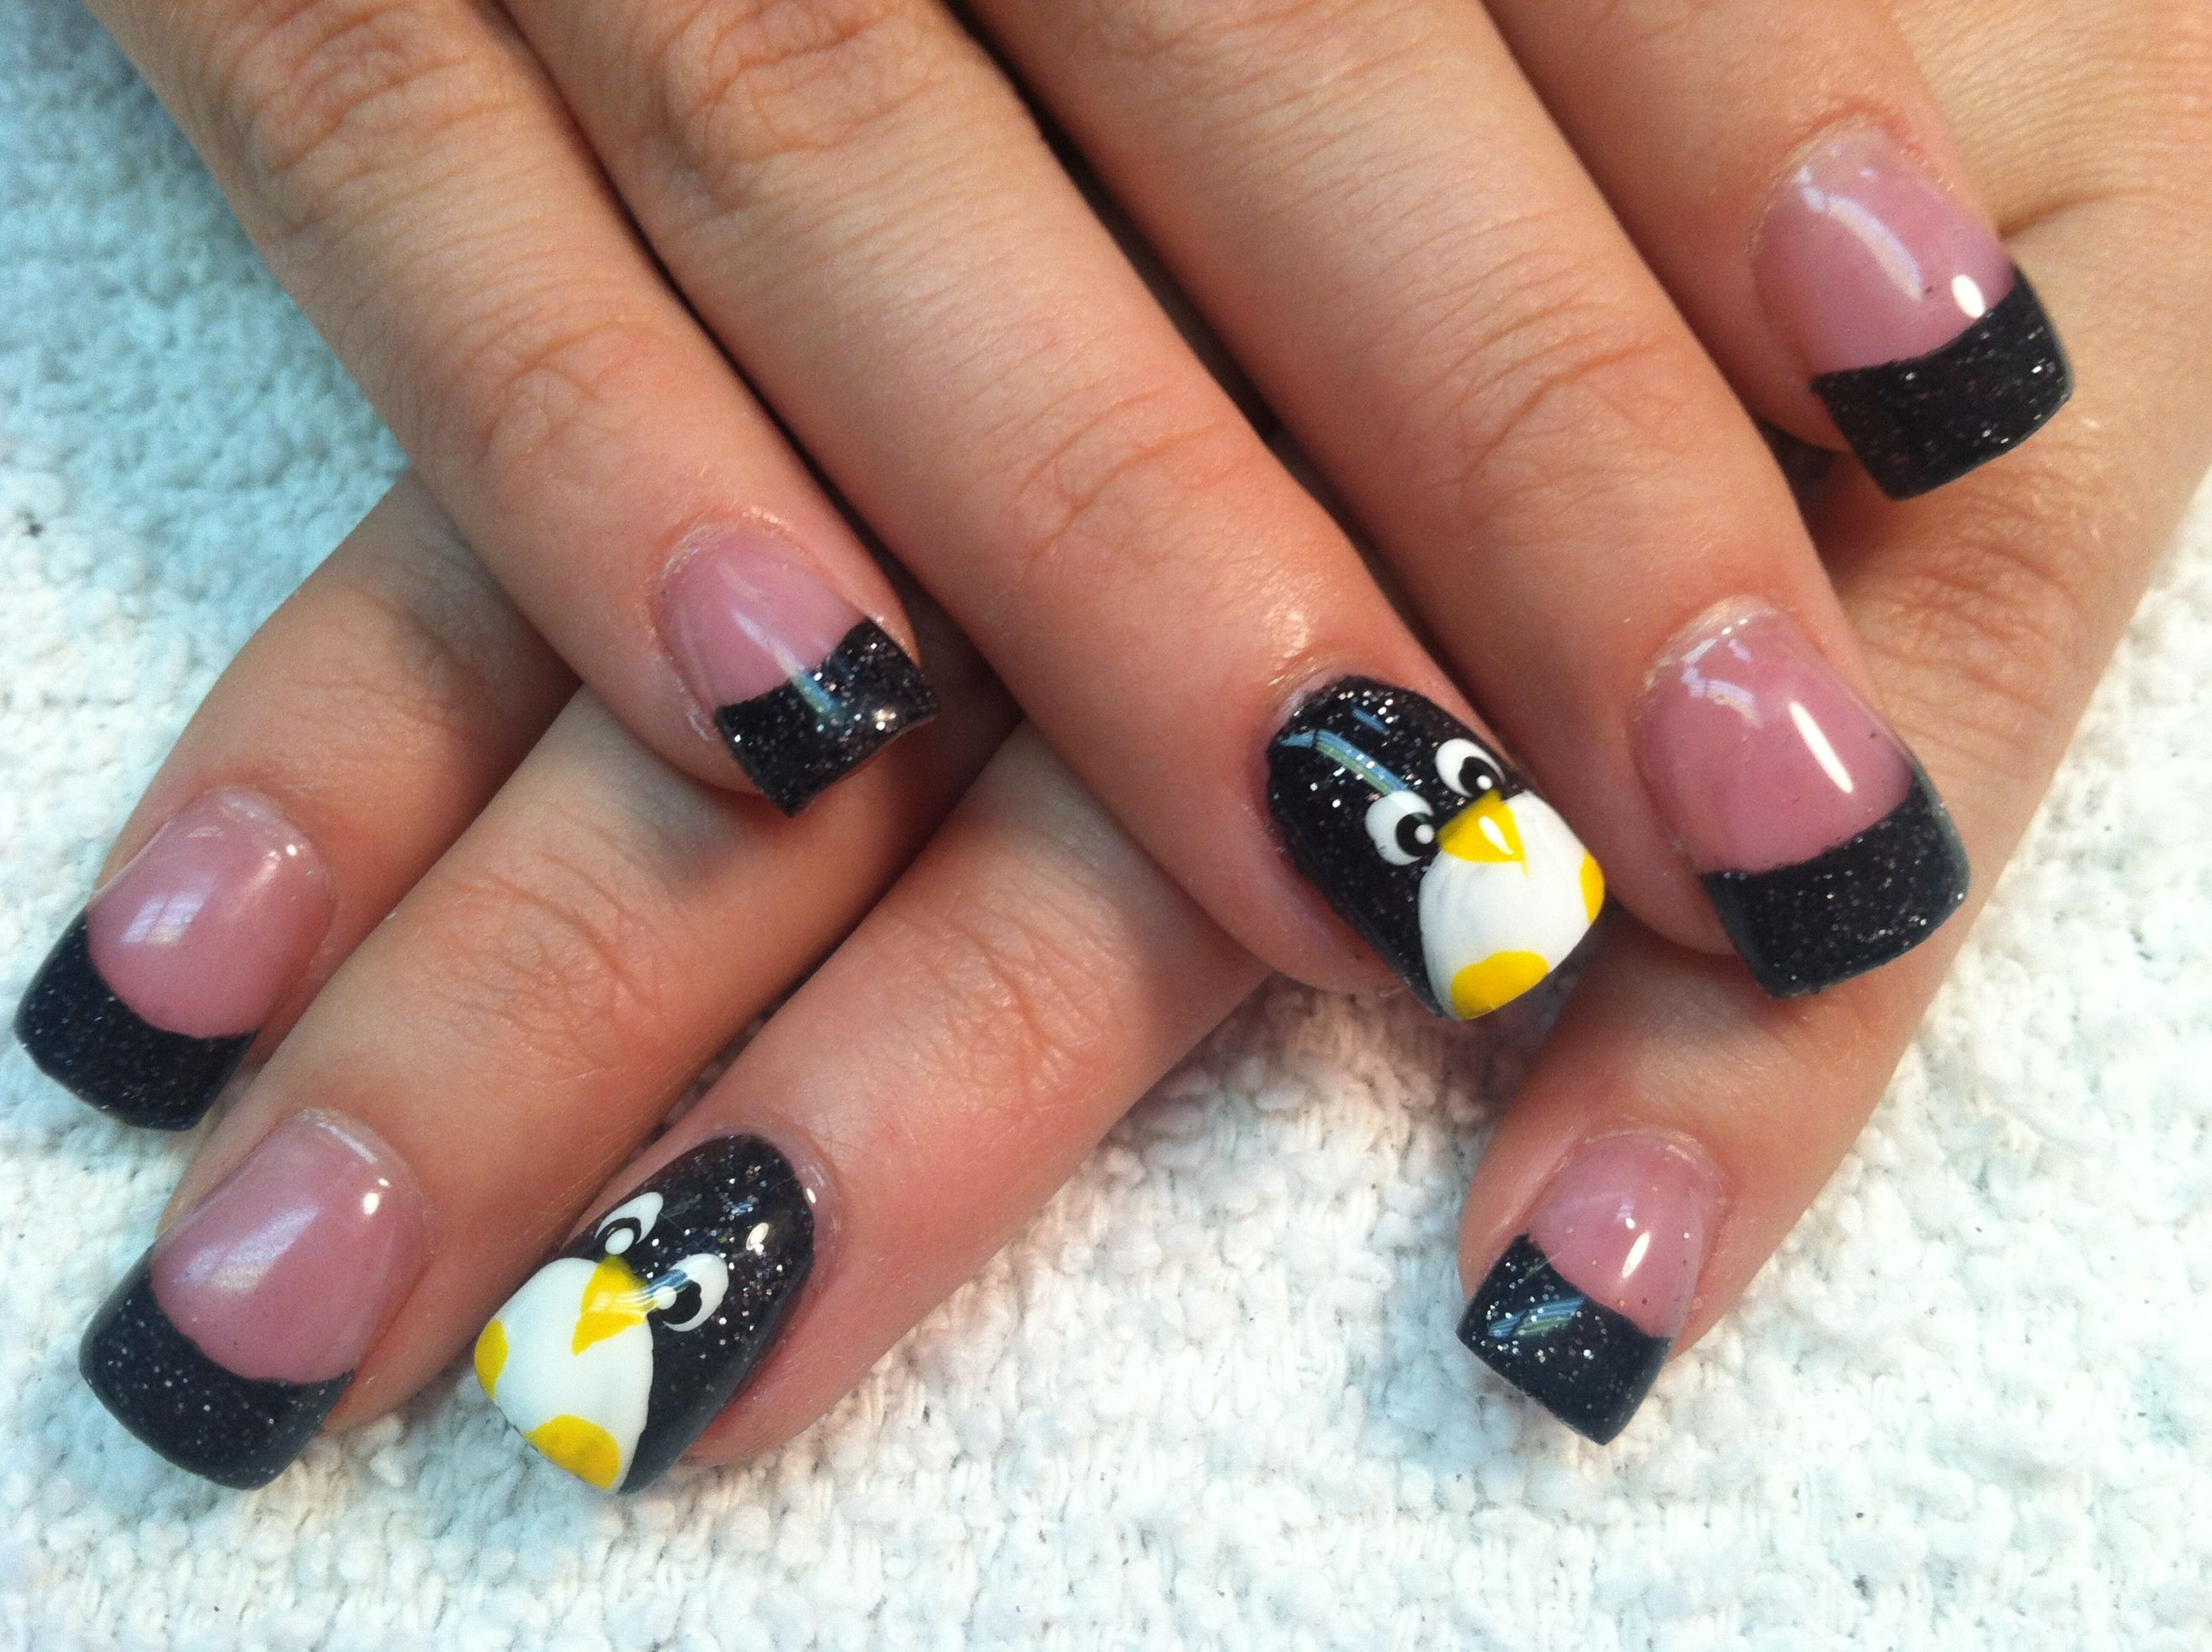 Penguin nails | nails | Pinterest | Penguin nails, Penguins and Fun ...